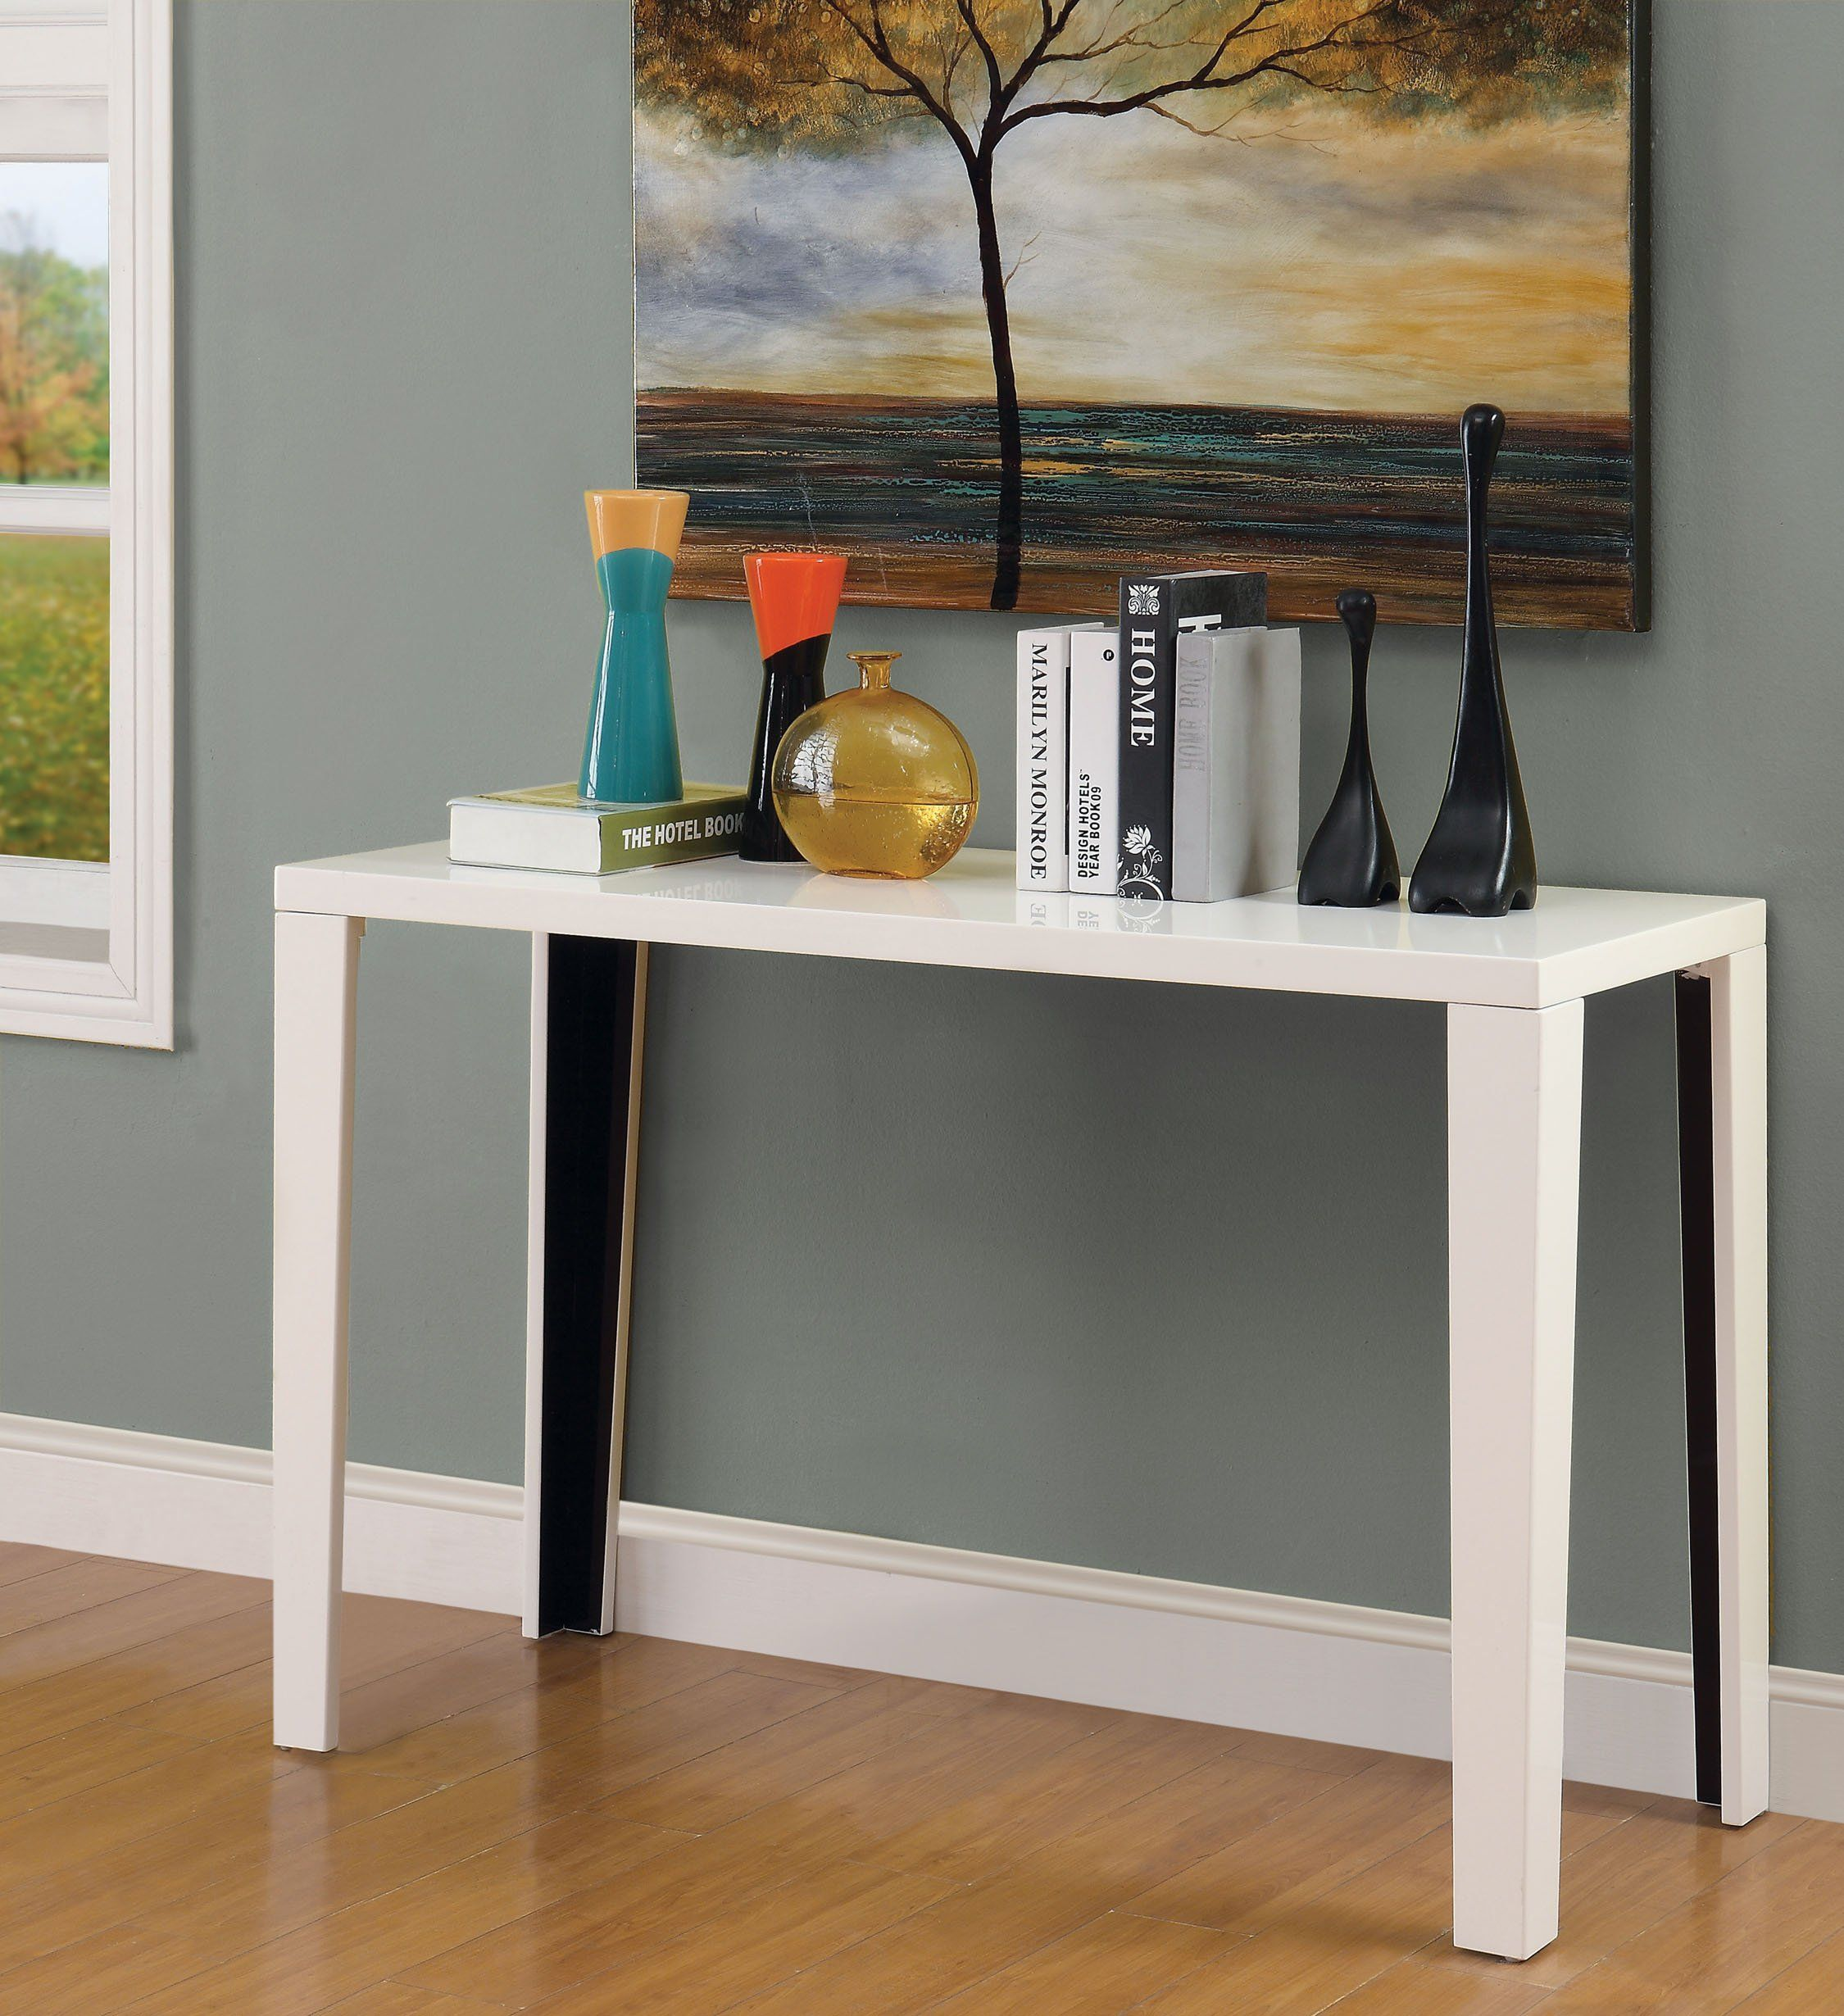 Furniture Of America Leblanc 2tone Sofa Table White And Black Want To Know More Click On The Image It Is Furniture Of America Sofa Table White Sofa Table